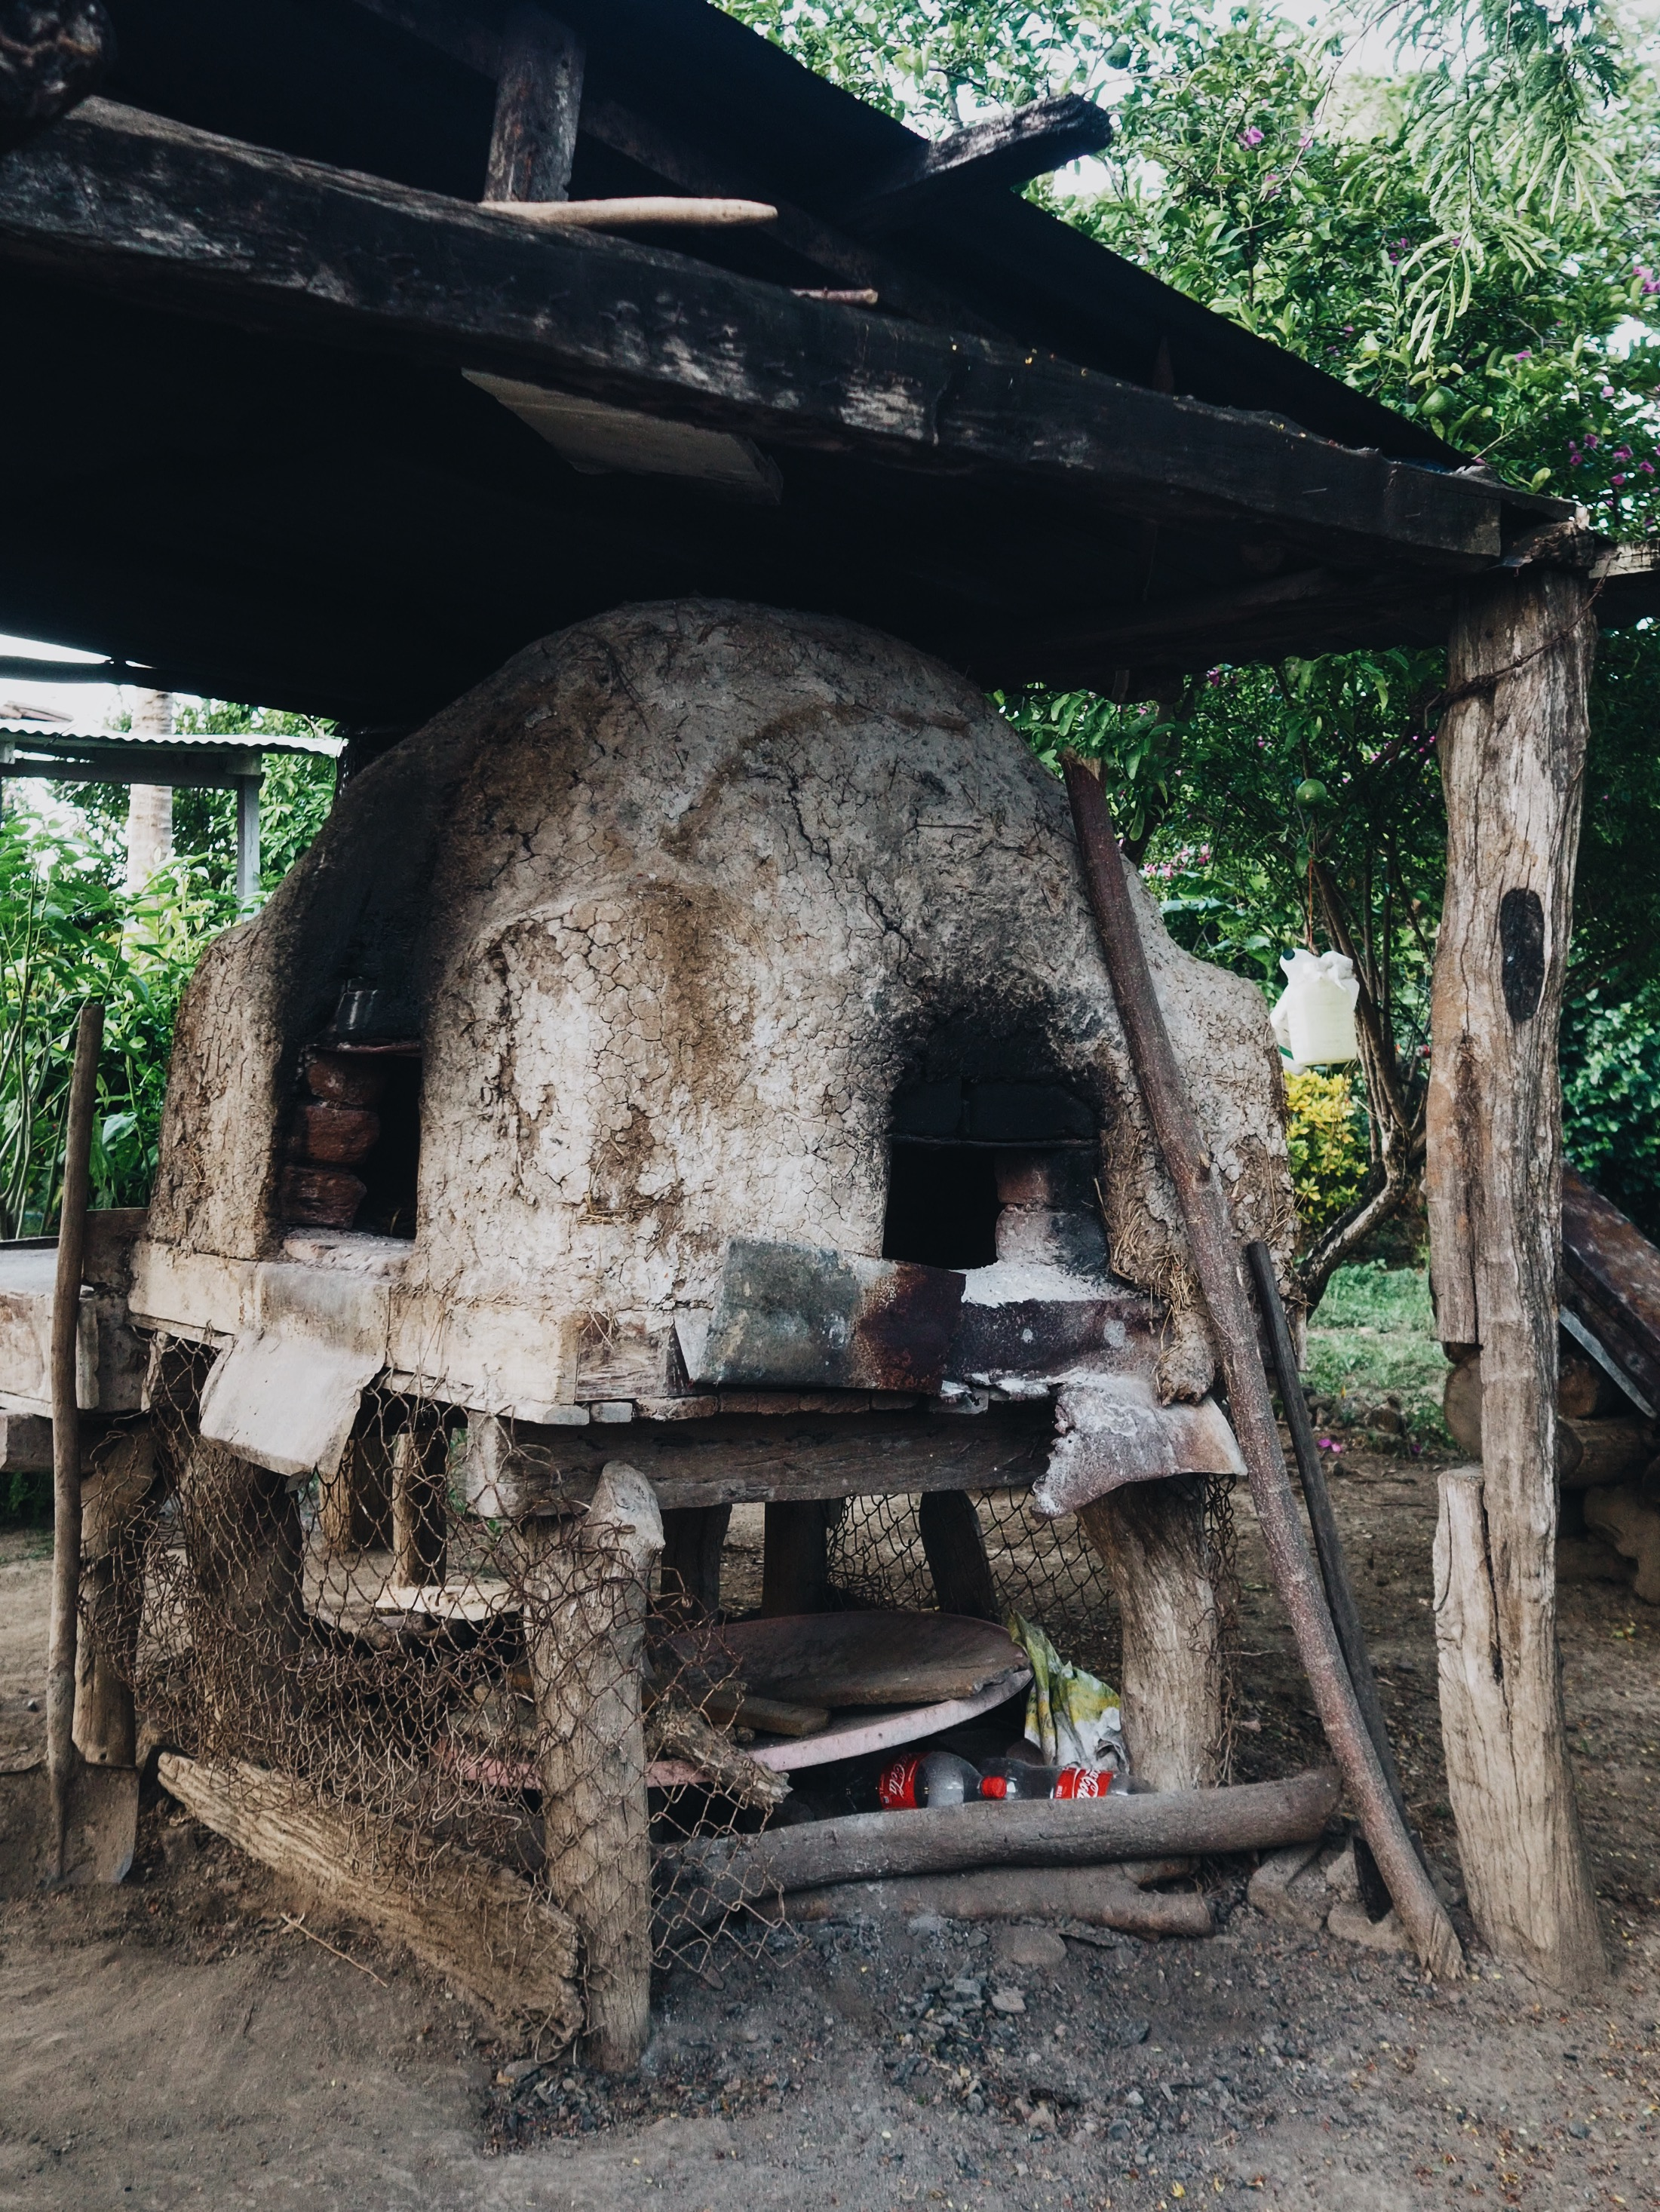 We loved the family's horno in the backyard! Pizza anyone?